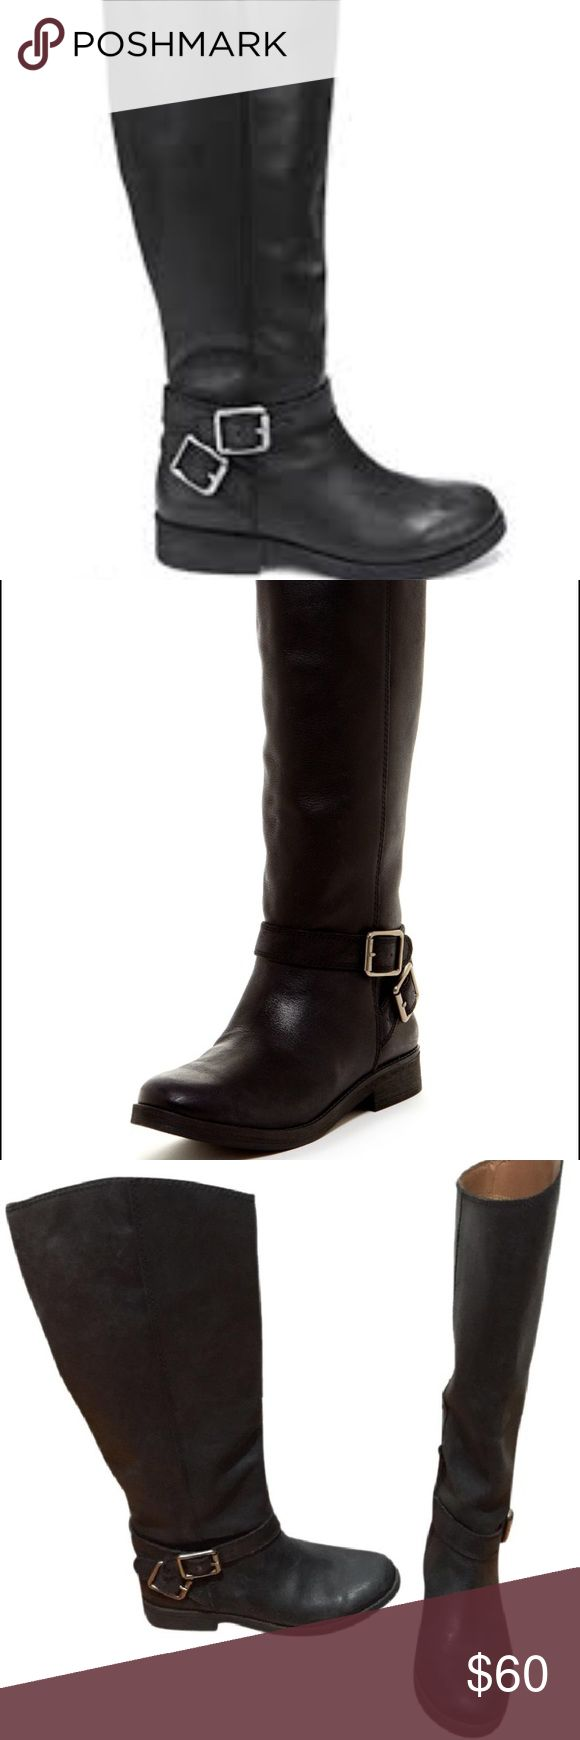 Lucky Brand Falta women riding boots Lucky Brand Falta women riding boots. All leather riding boot, great condition. Small almost unnoticeable gold streak on the back of left boot. Please see pictures Lucky Brand Shoes Winter & Rain Boots